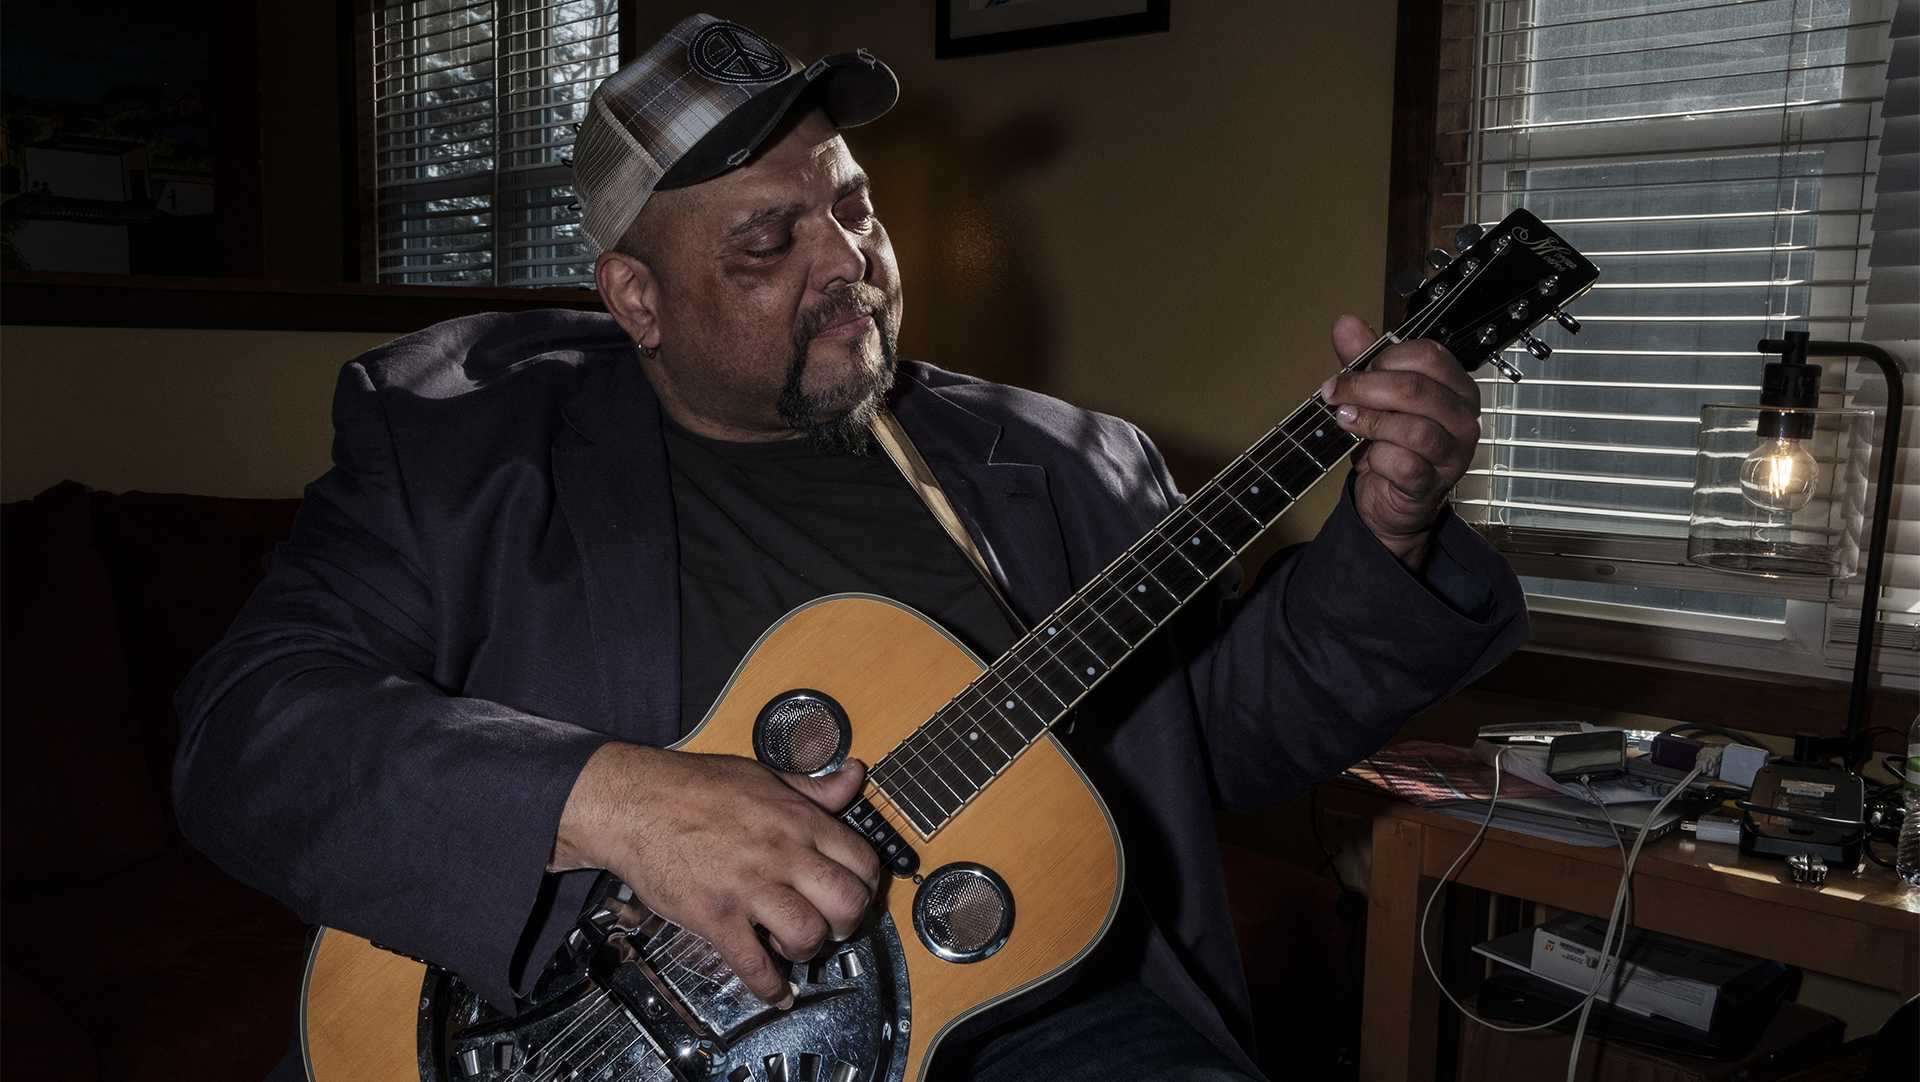 Blues musician Kevin Burt poses for a portrait in his Coralville home on Wednesday, Feb. 7, 2018. Burt recently won awards in the acoustic category at the International Blues Festival in Memphis. (Nick Rohlman/The Daily Iowan)